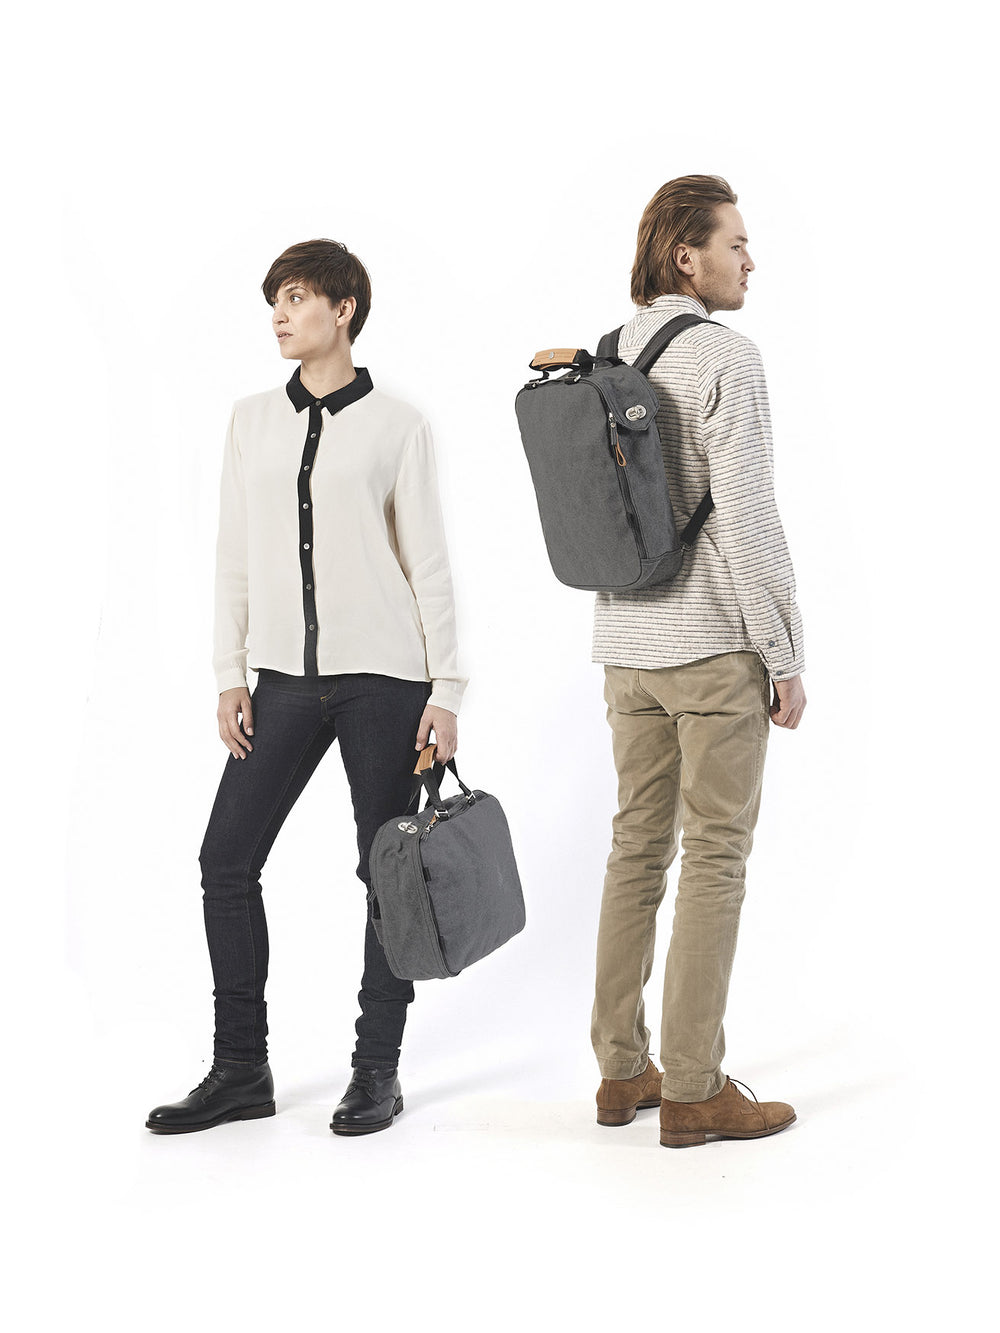 Compact and minimalist backpack in Washed Grey look